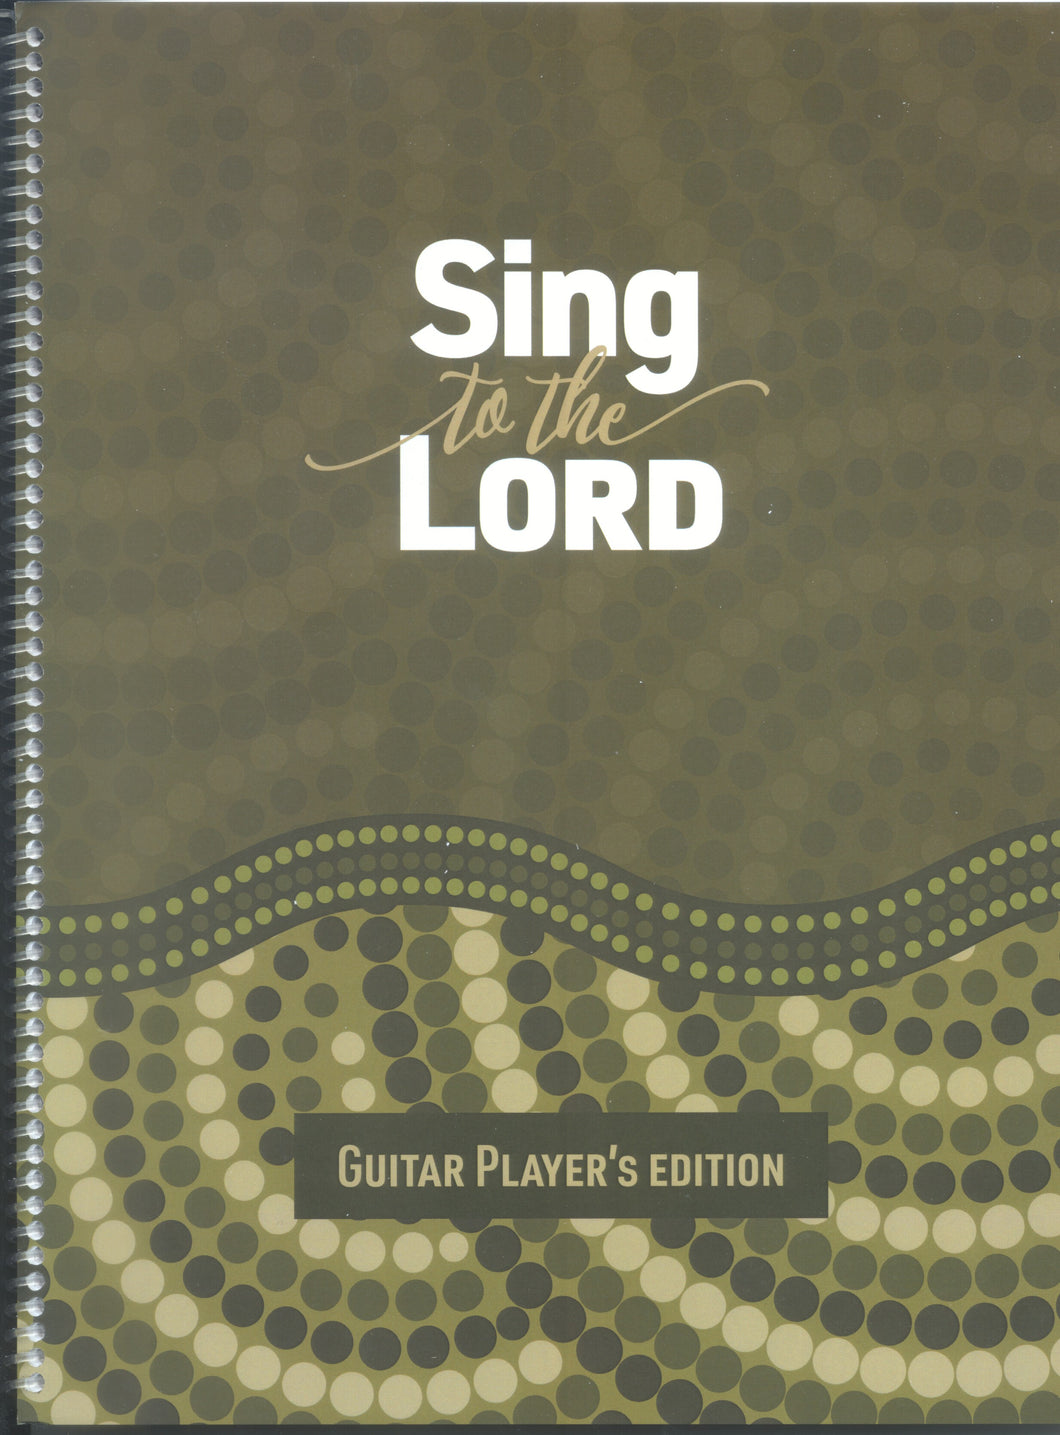 Sing to the Lord - Guitar Player's Edition